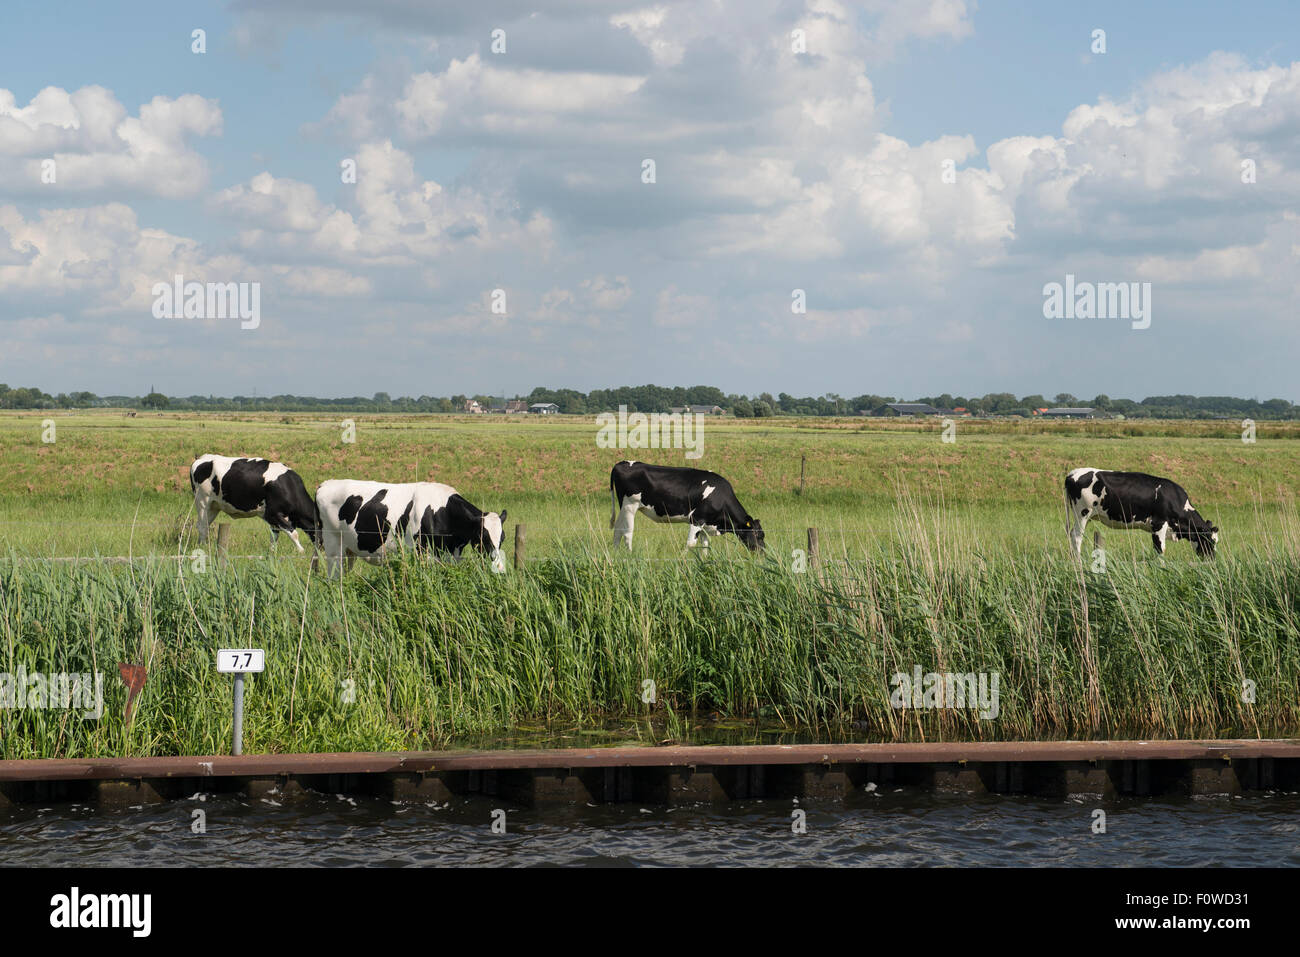 Milk cows grazing at the banks of the Eem river, Amersfoort, Netherlands Stock Photo